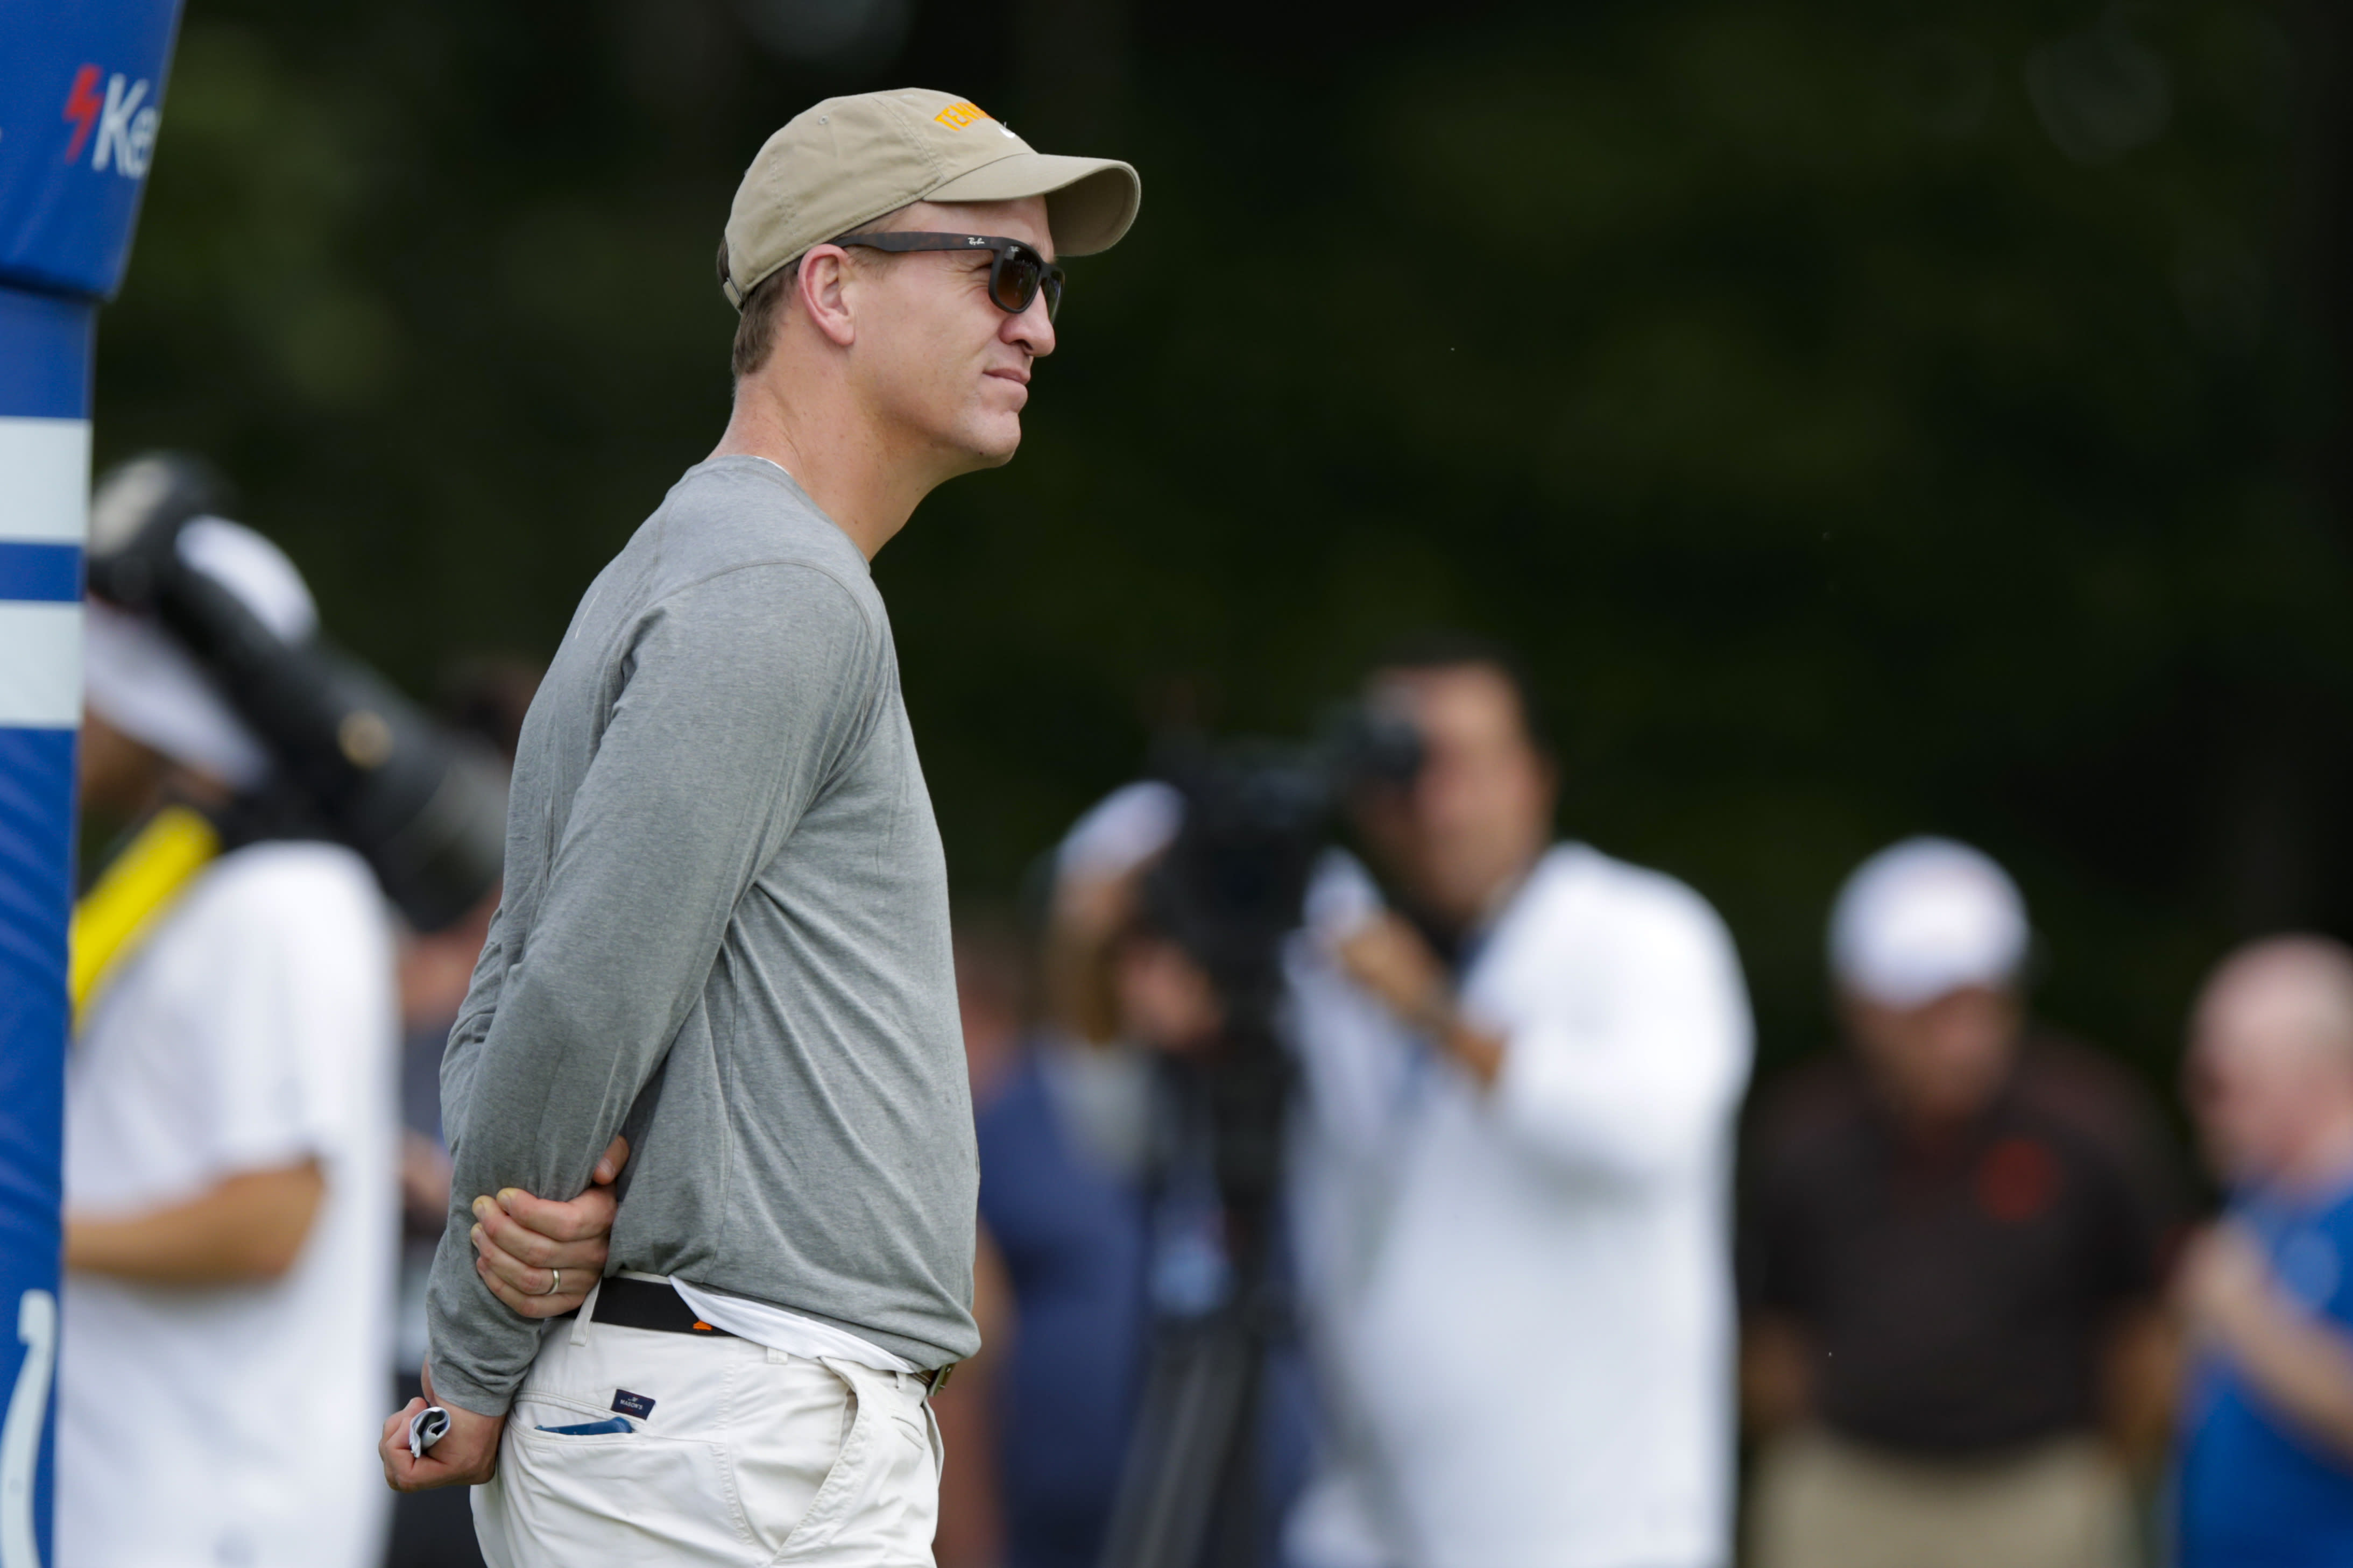 Former Indianapolis Colts quarterback Peyton Manning watches a joint practice of the Cleveland Browns at the Colts' NFL football training camp in Westfield, Ind., Thursday, Aug. 15, 2019. (AP Photo/Michael Conroy)